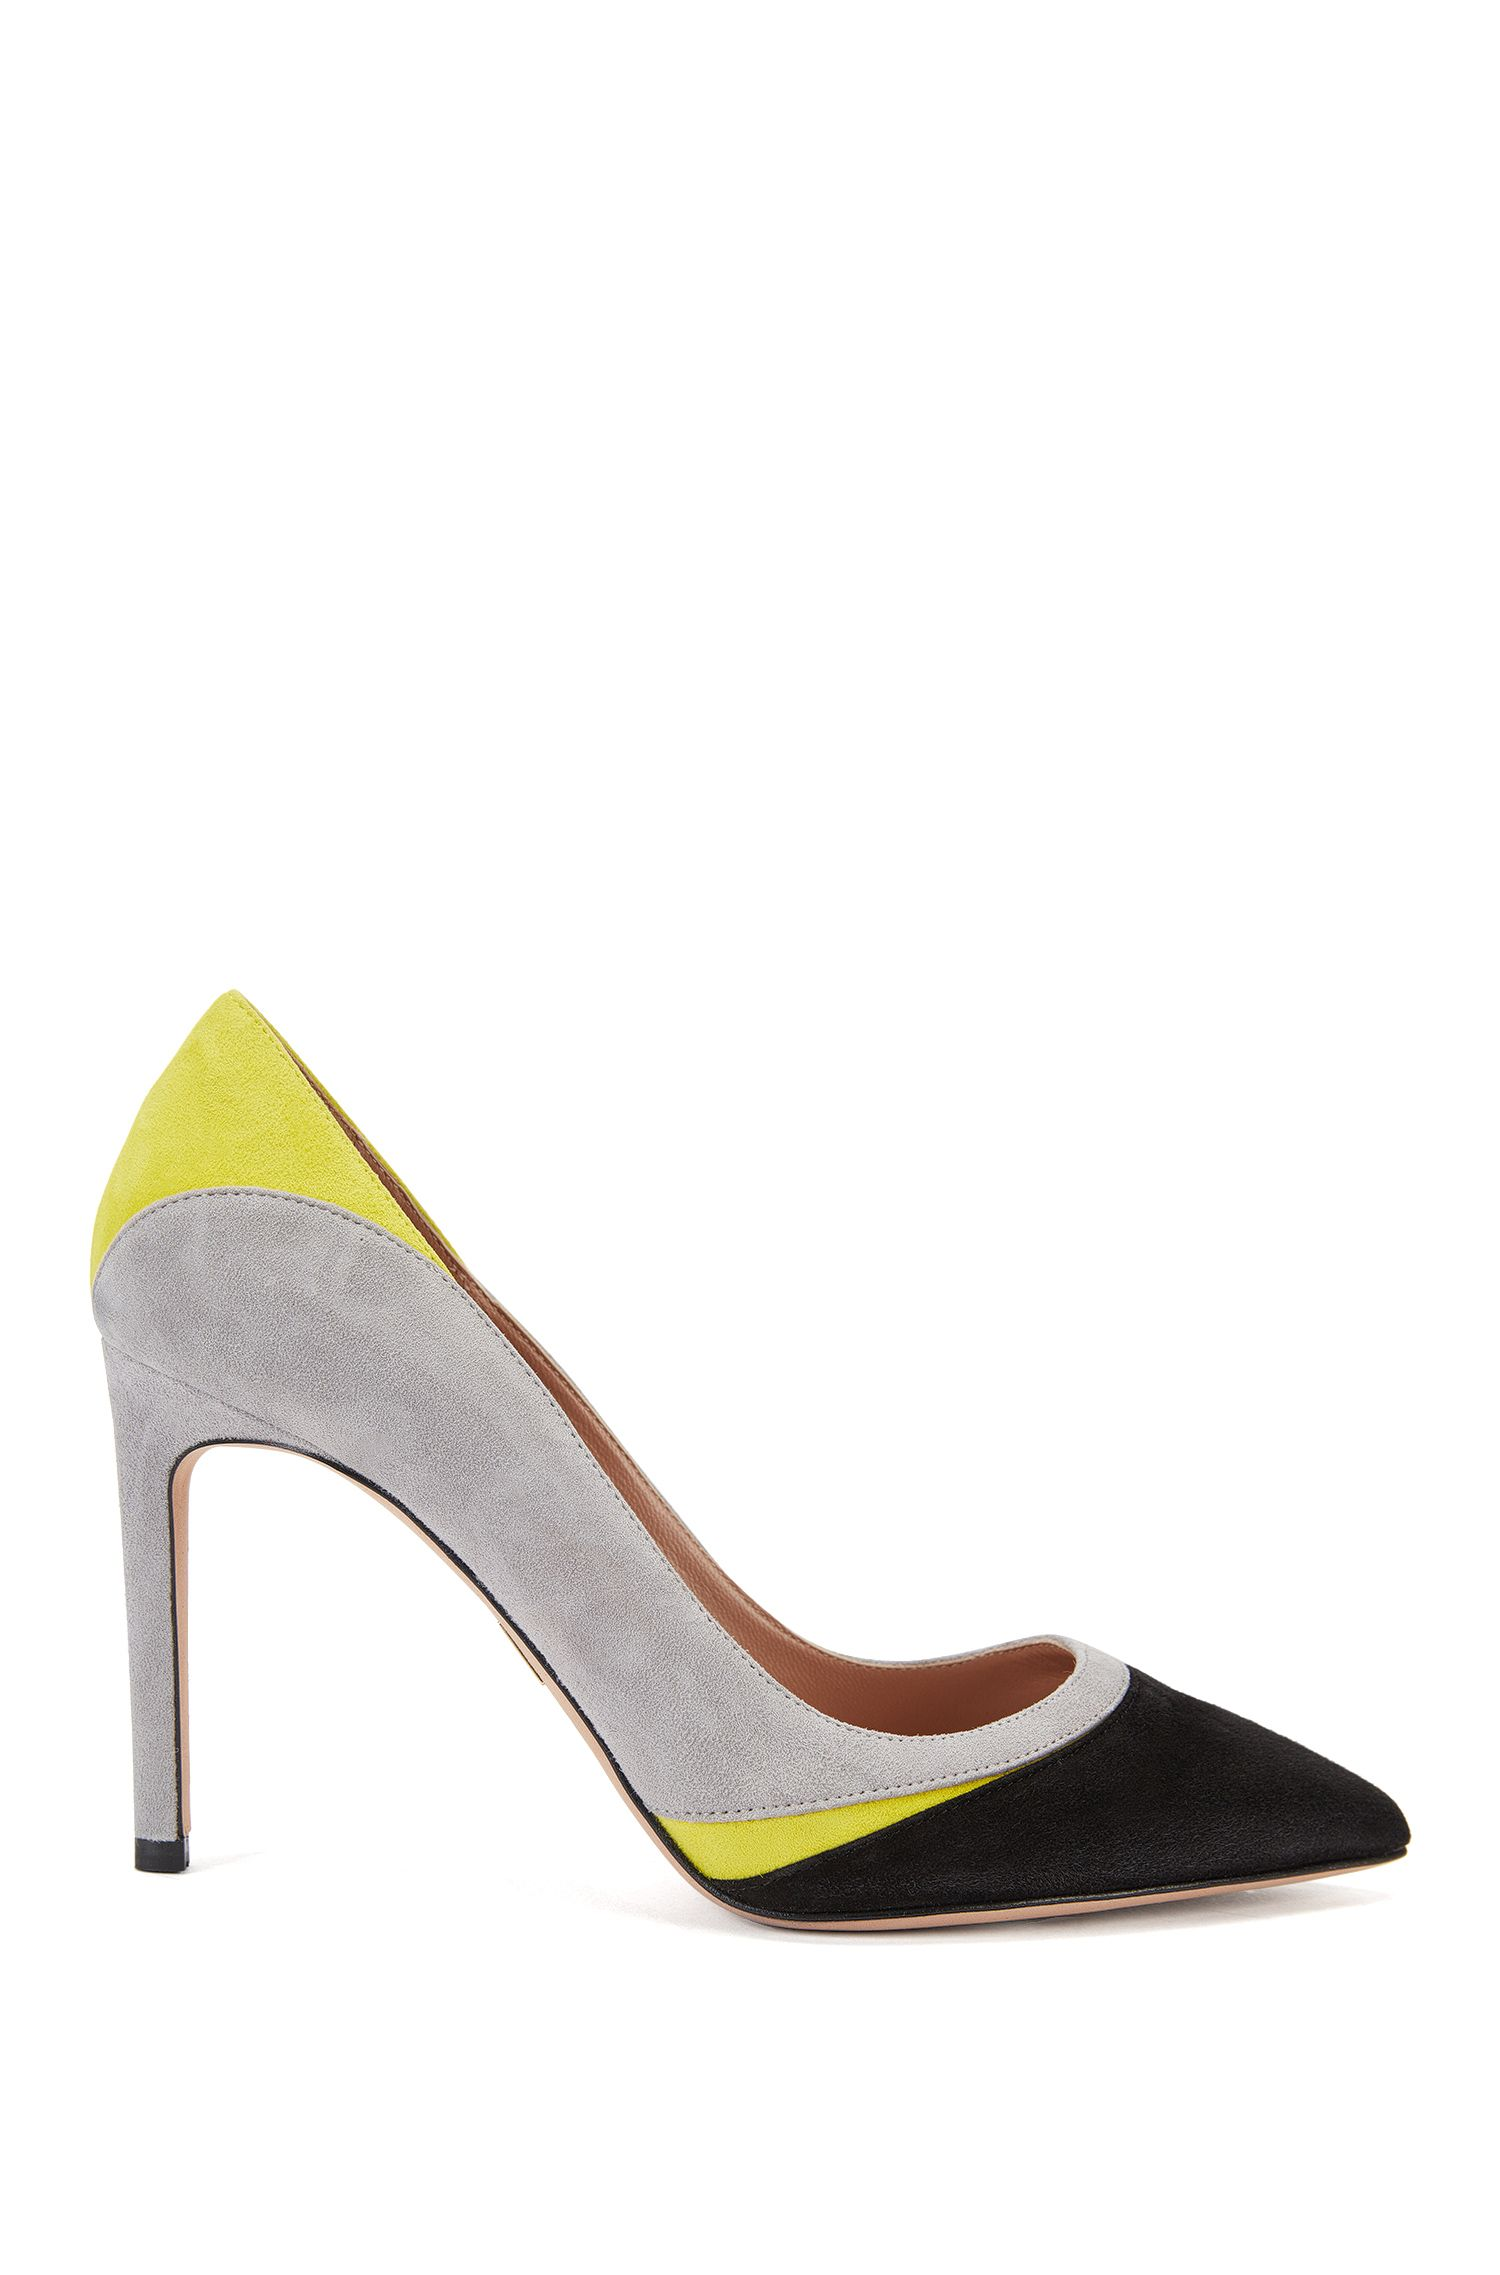 Pumps van luxueus Italiaanse suède met colourblocking